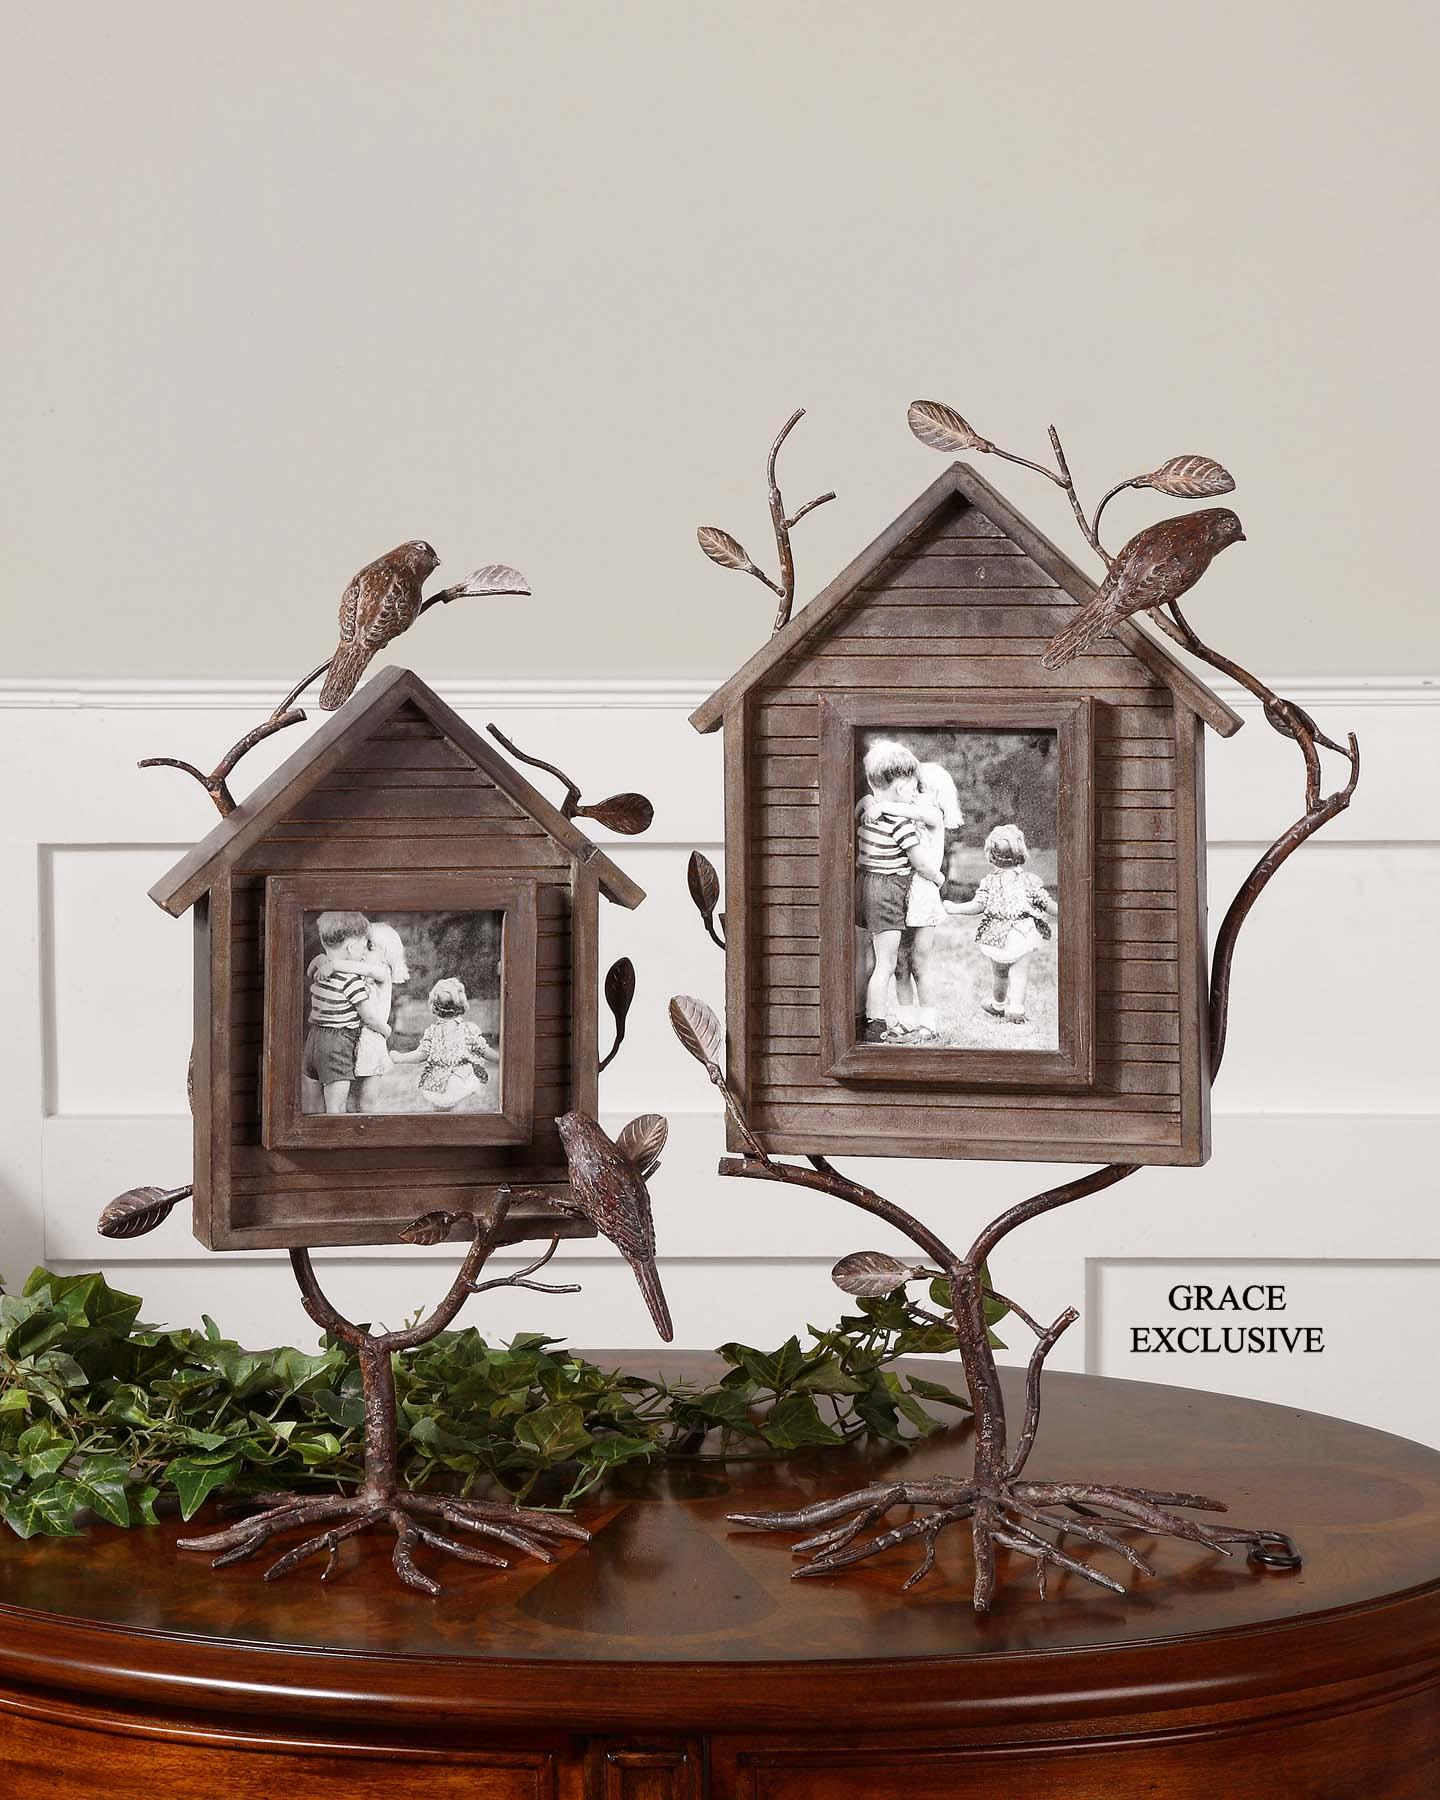 Uttermost 18528 Bird house photo frames set/2 (с дефектом) - фото 2